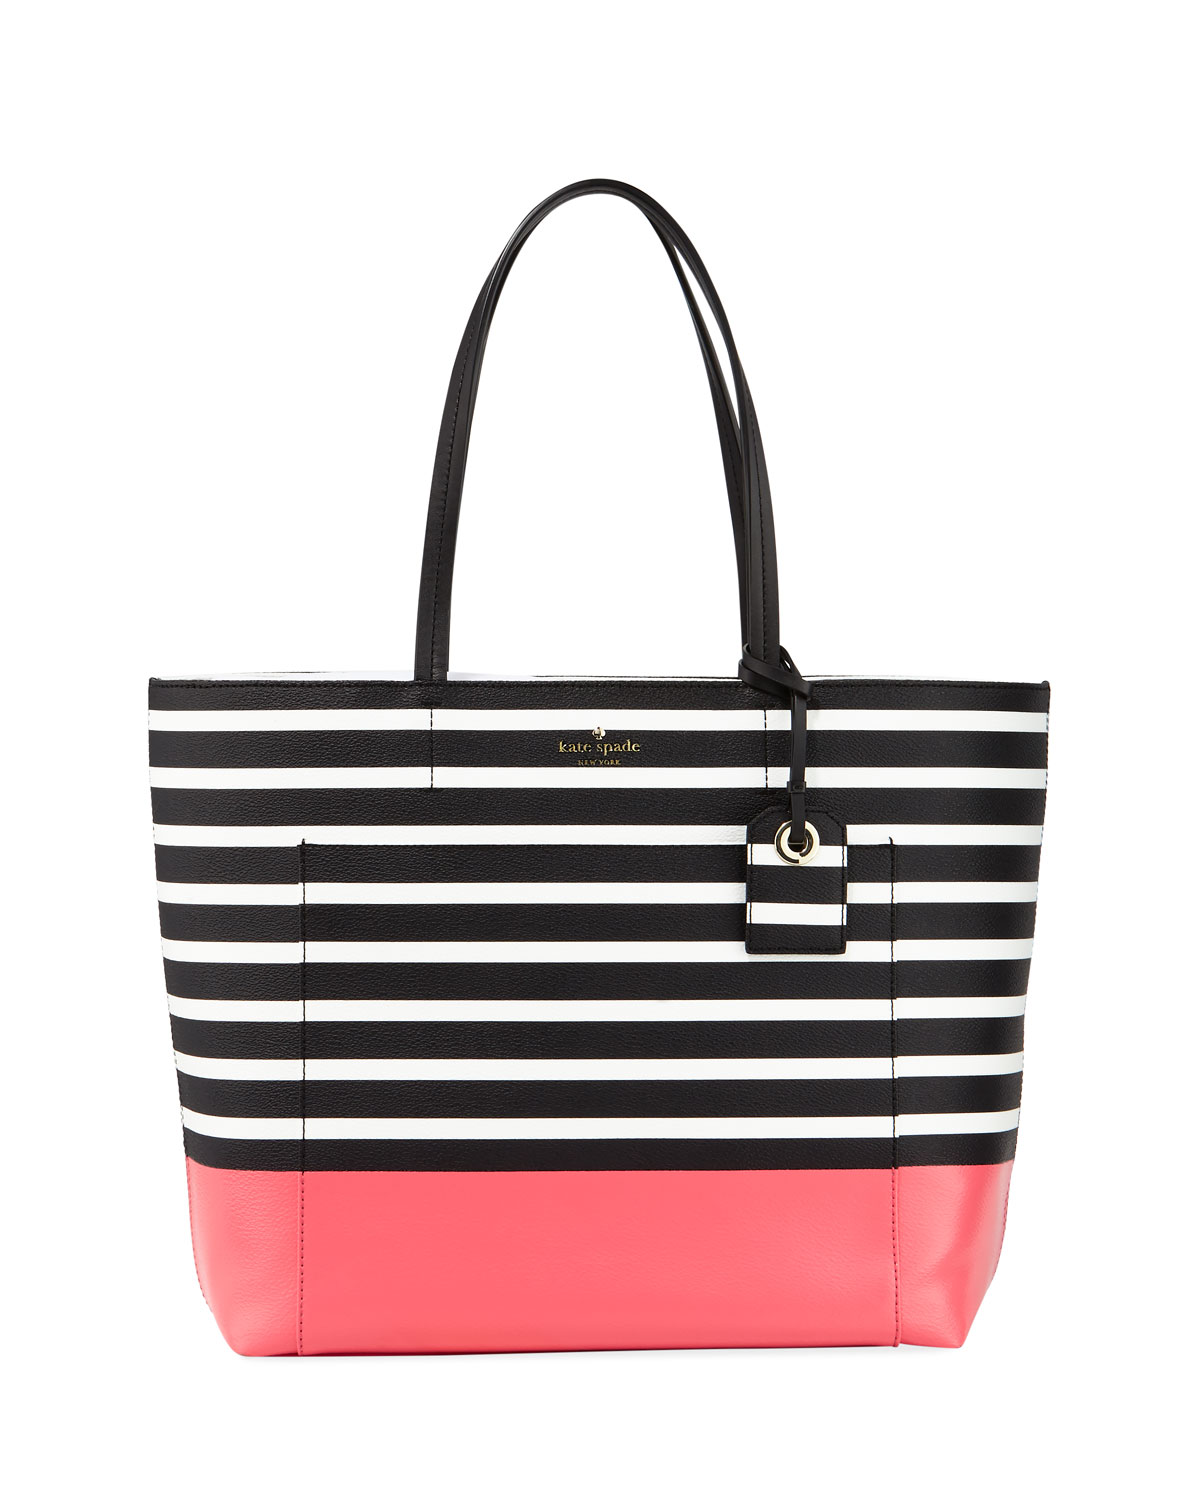 8e6c1664320 kate spade new york riley two-toned striped tote bag